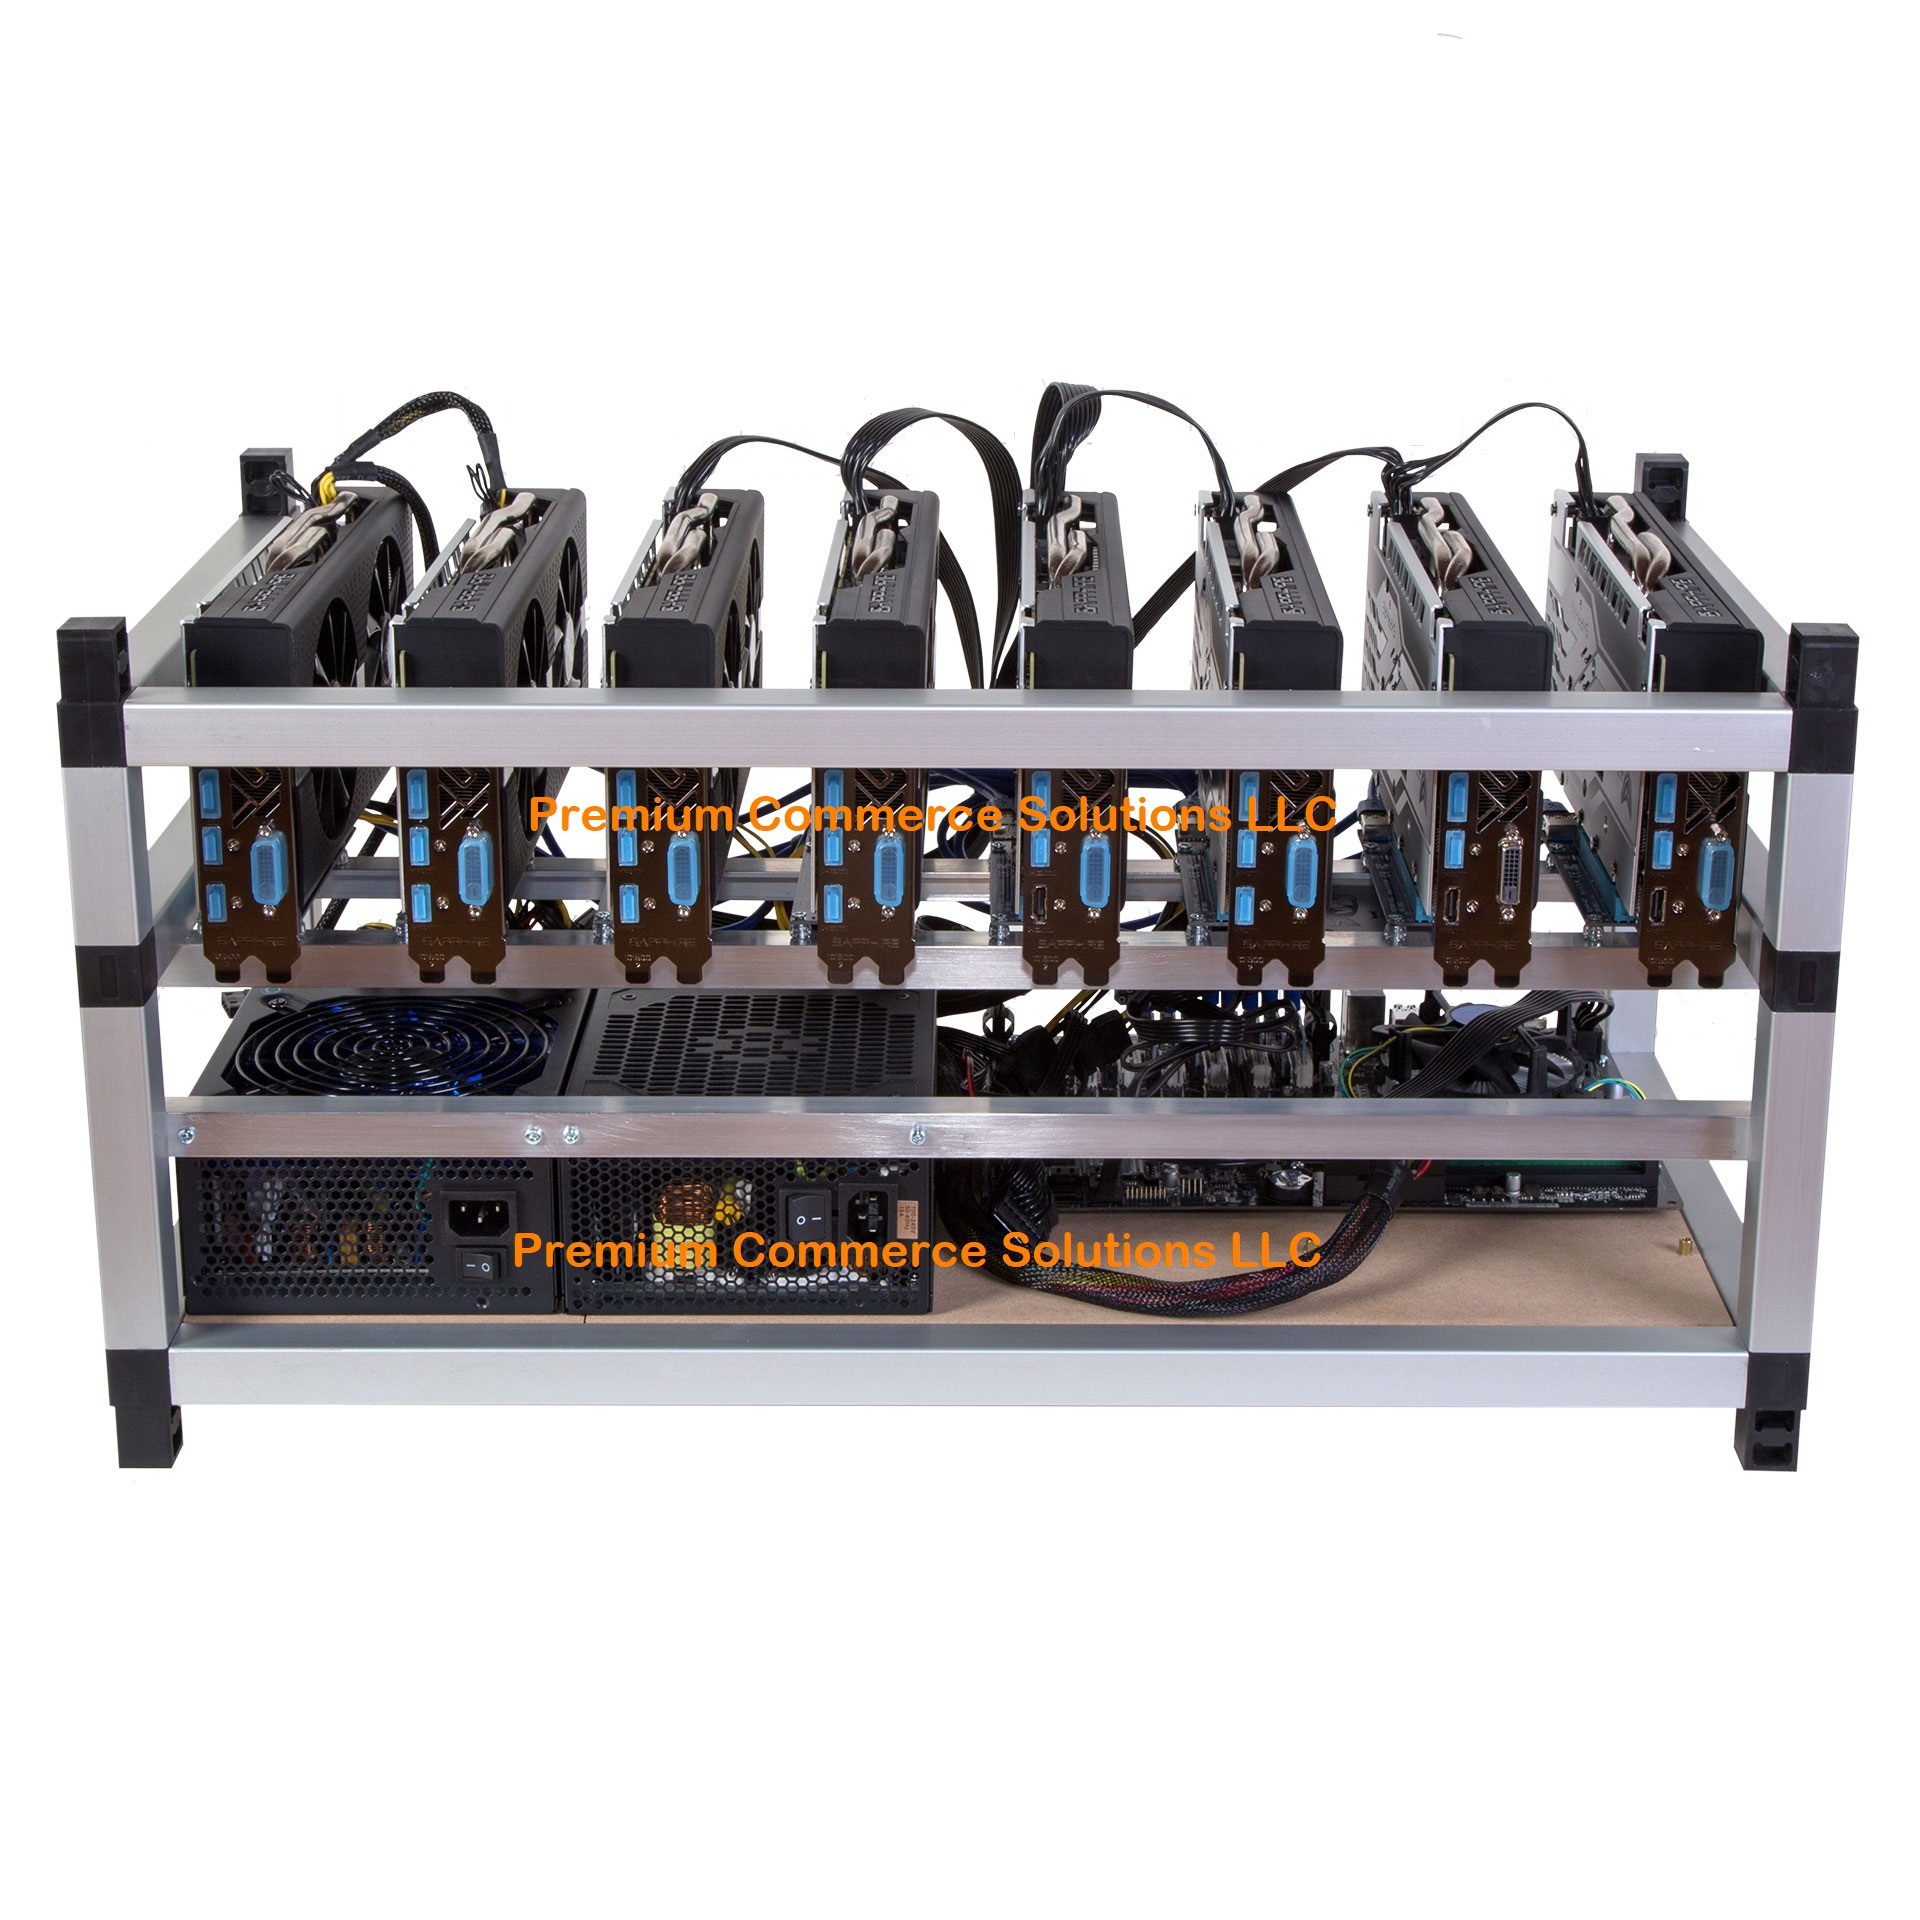 Find bitcoin mining rigs here for sale